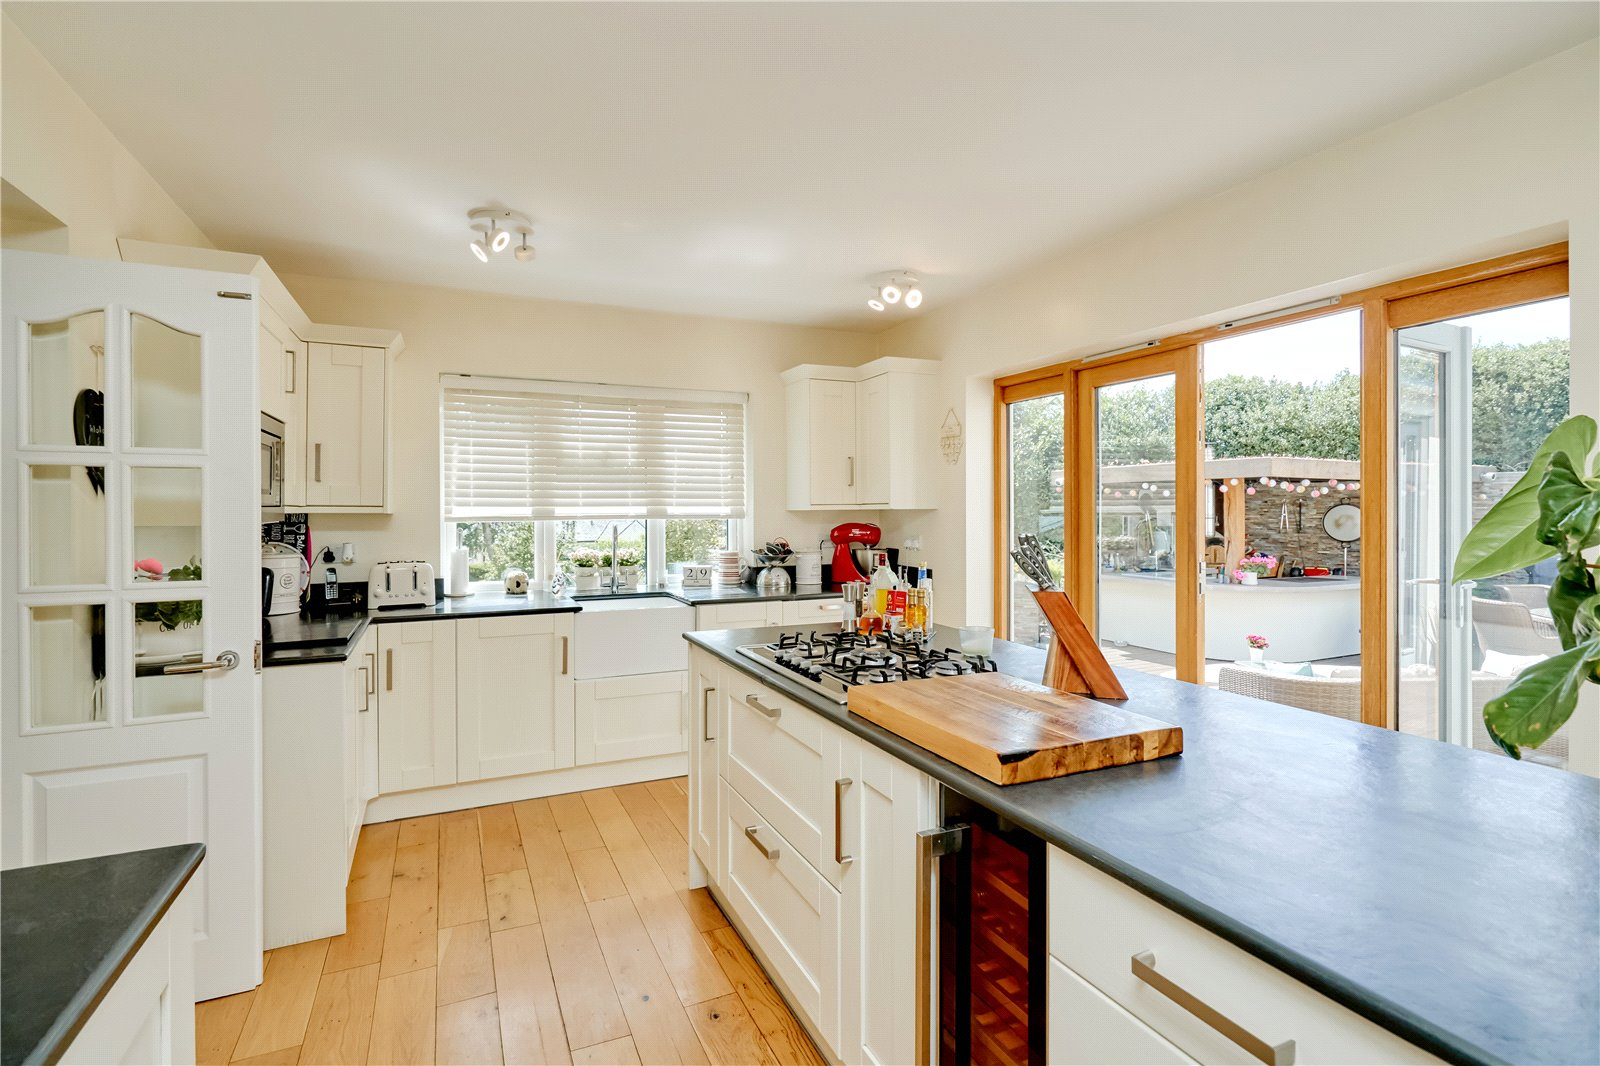 4 bed house for sale in Heathbrow Road, Old Welwyn  - Property Image 5